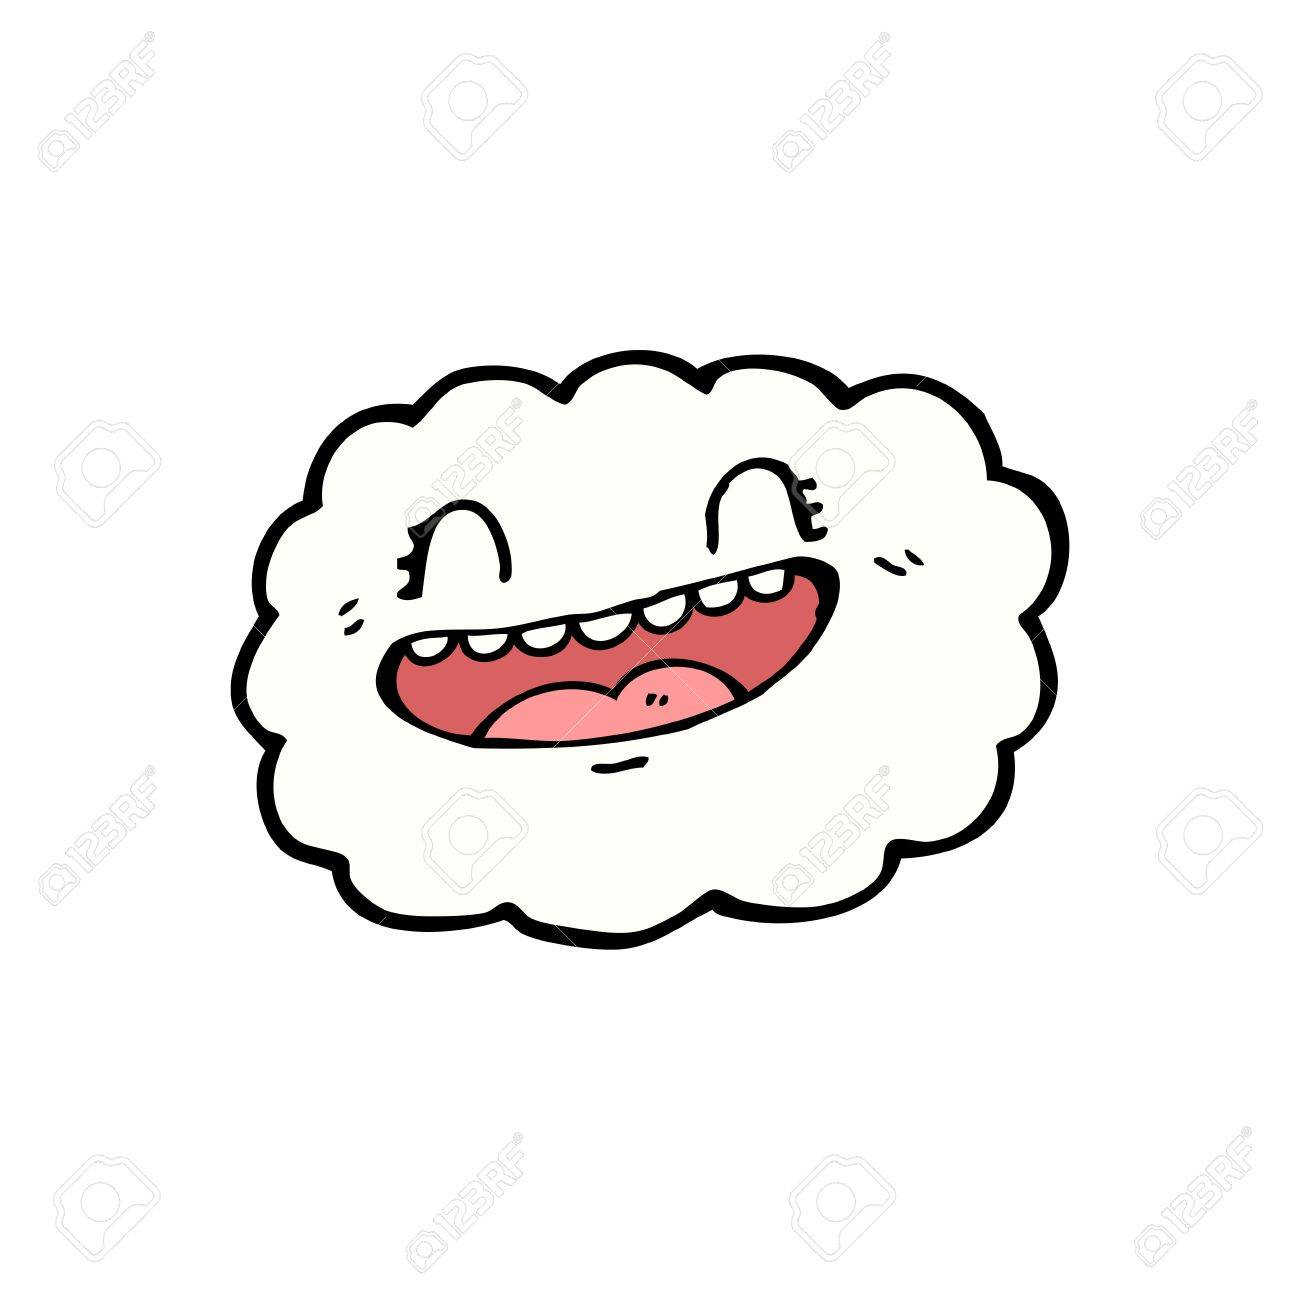 cartoon cloud with expression Stock Vector - 15789856